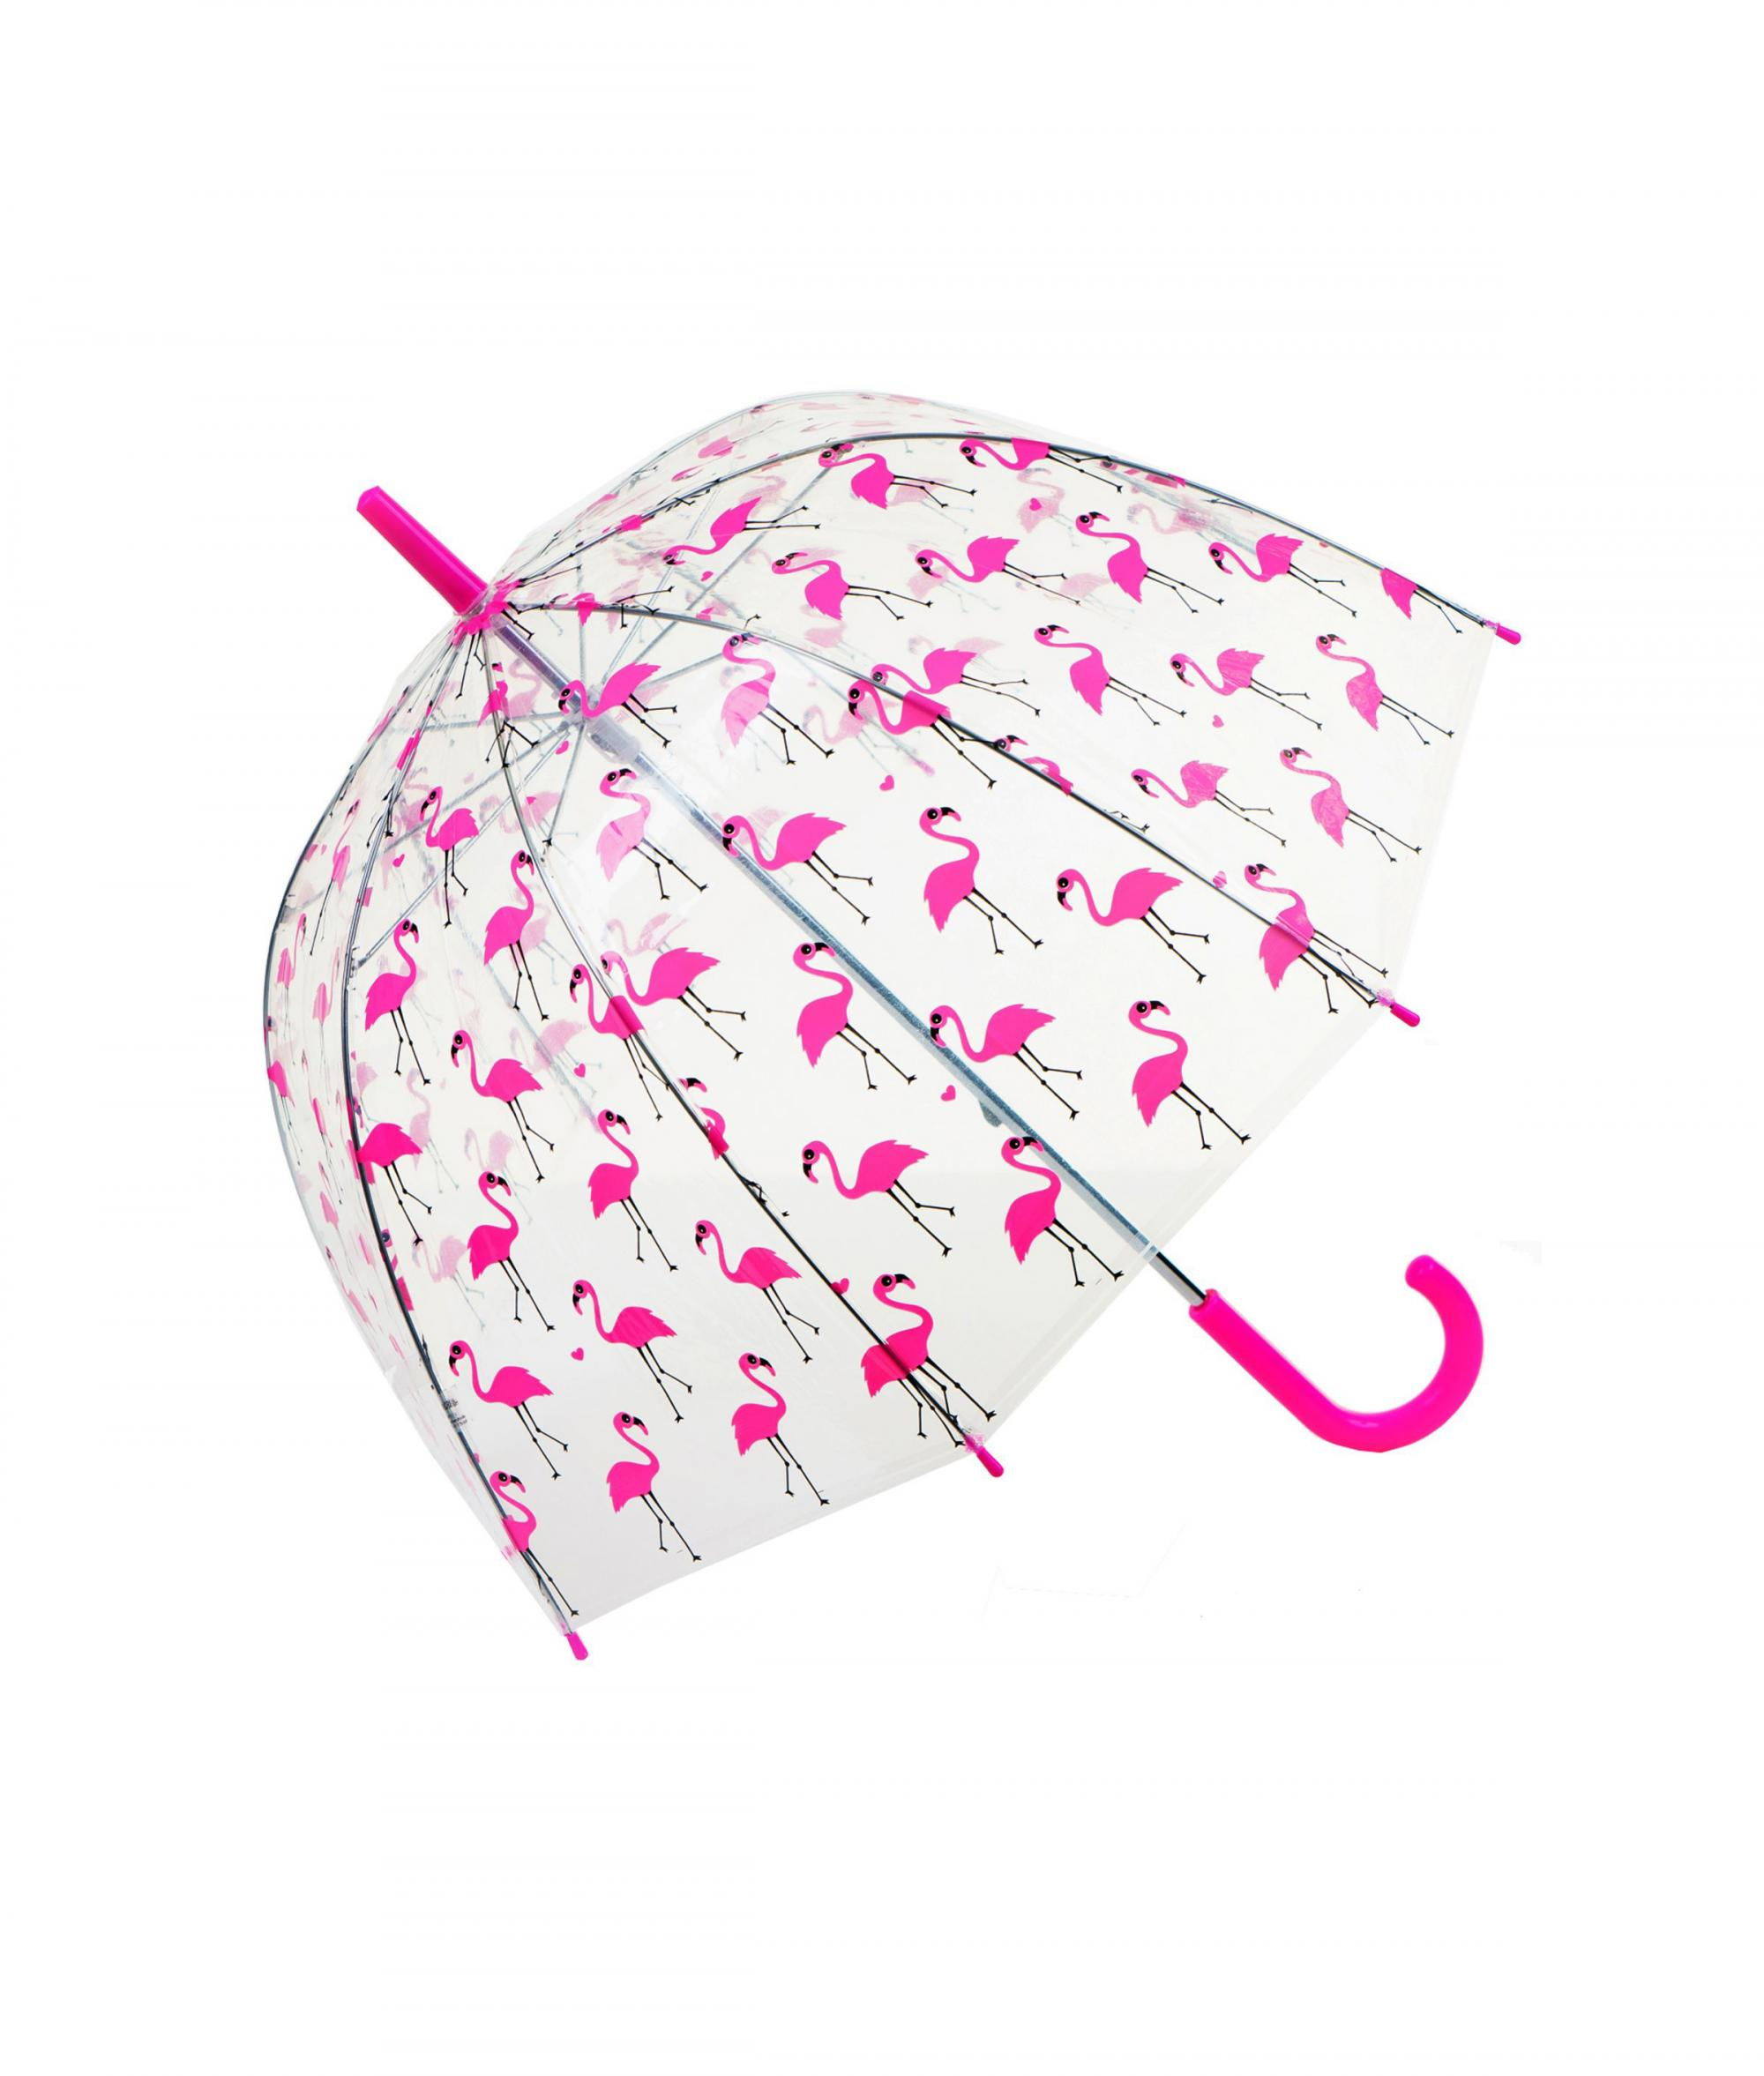 Flamingo Dome Umbrella Cancer Research Uk Online Shop